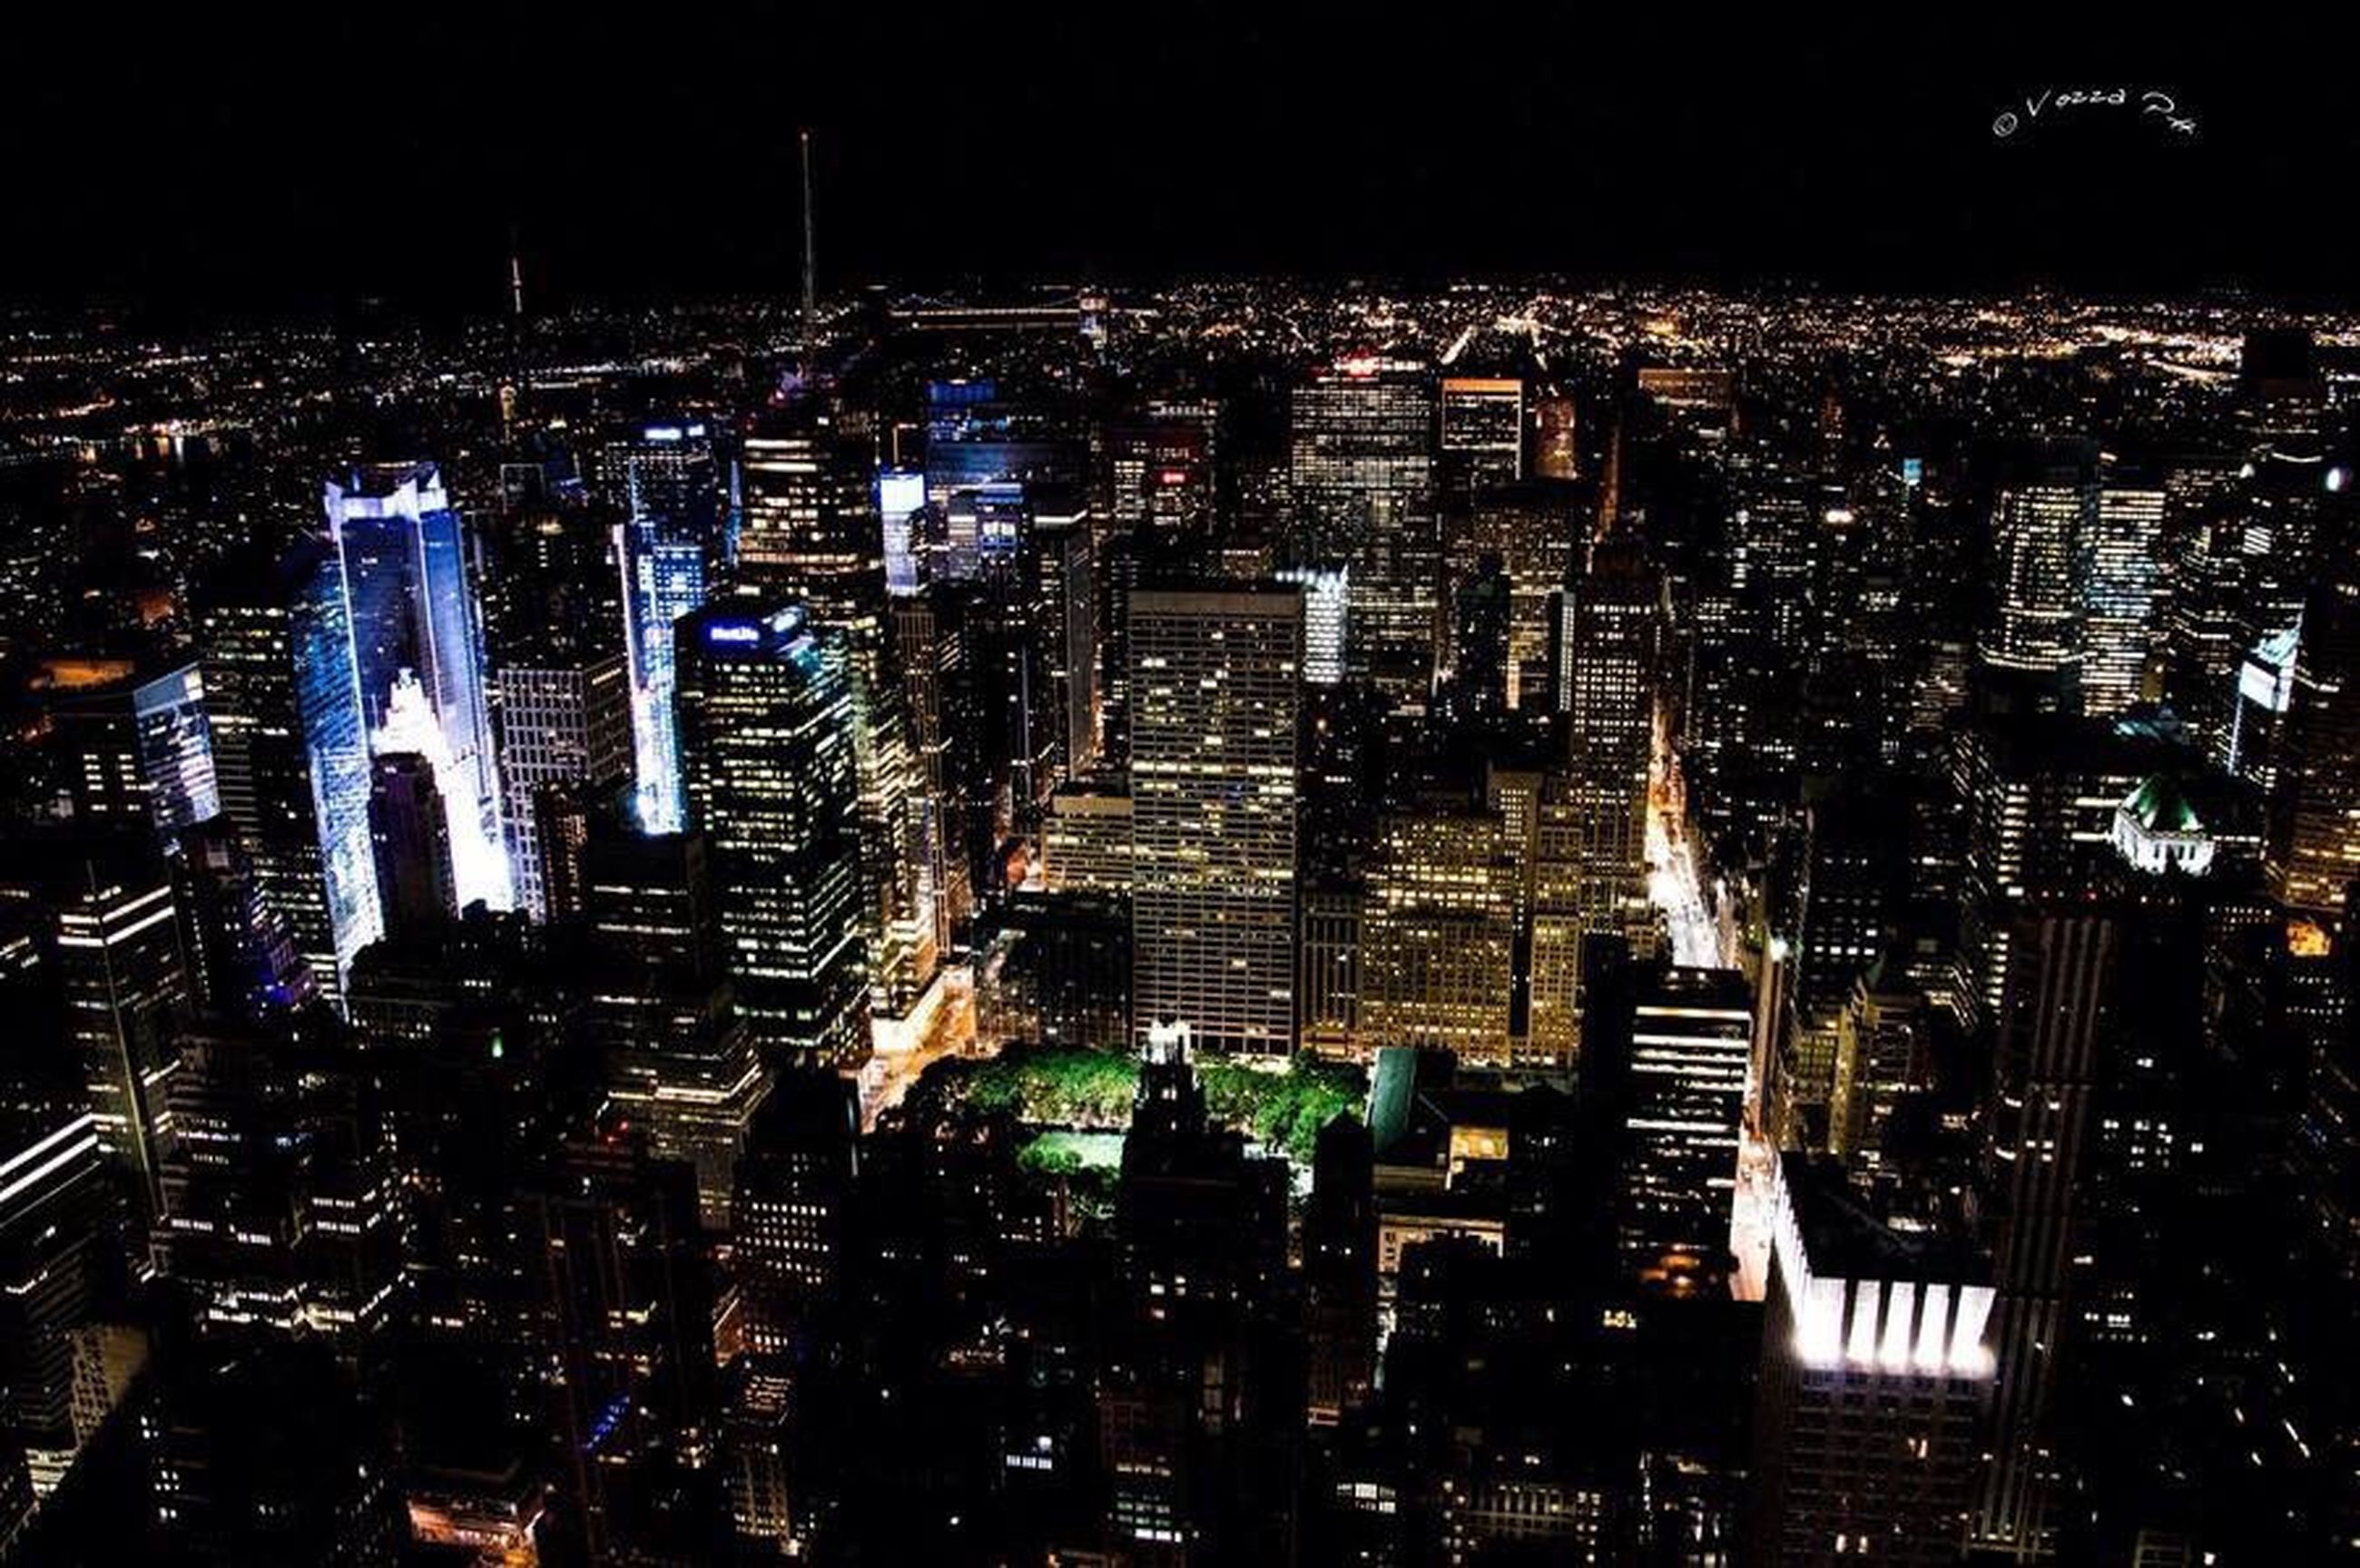 architecture, building exterior, built structure, city, night, illuminated, cityscape, high angle view, skyscraper, water, tall - high, residential building, modern, tower, residential district, city life, office building, development, residential structure, crowded